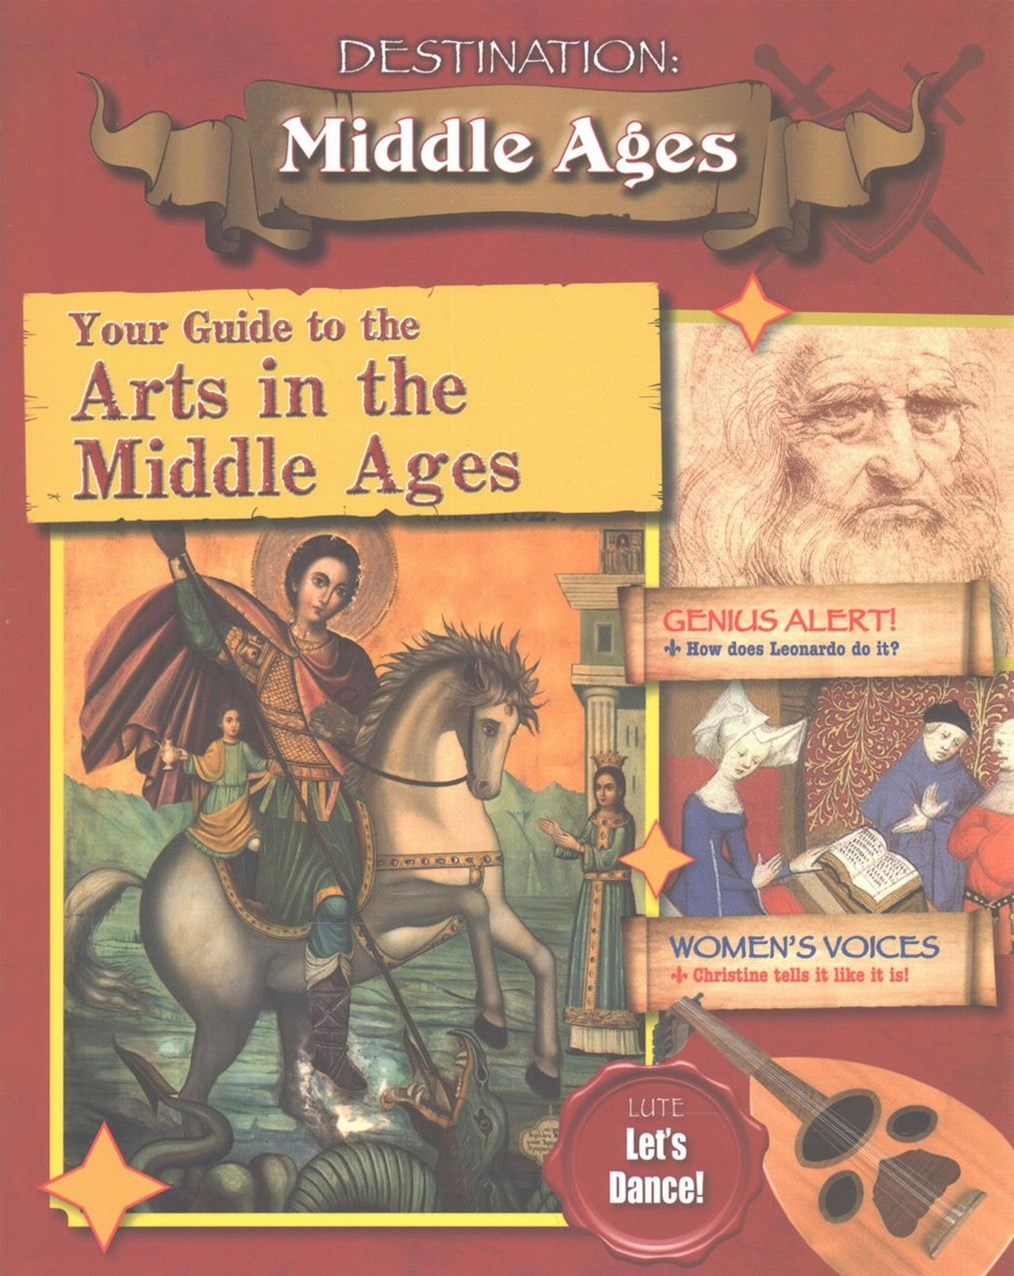 Your Guide to the Arts in the Middle Ages - Destination: Middle Ages